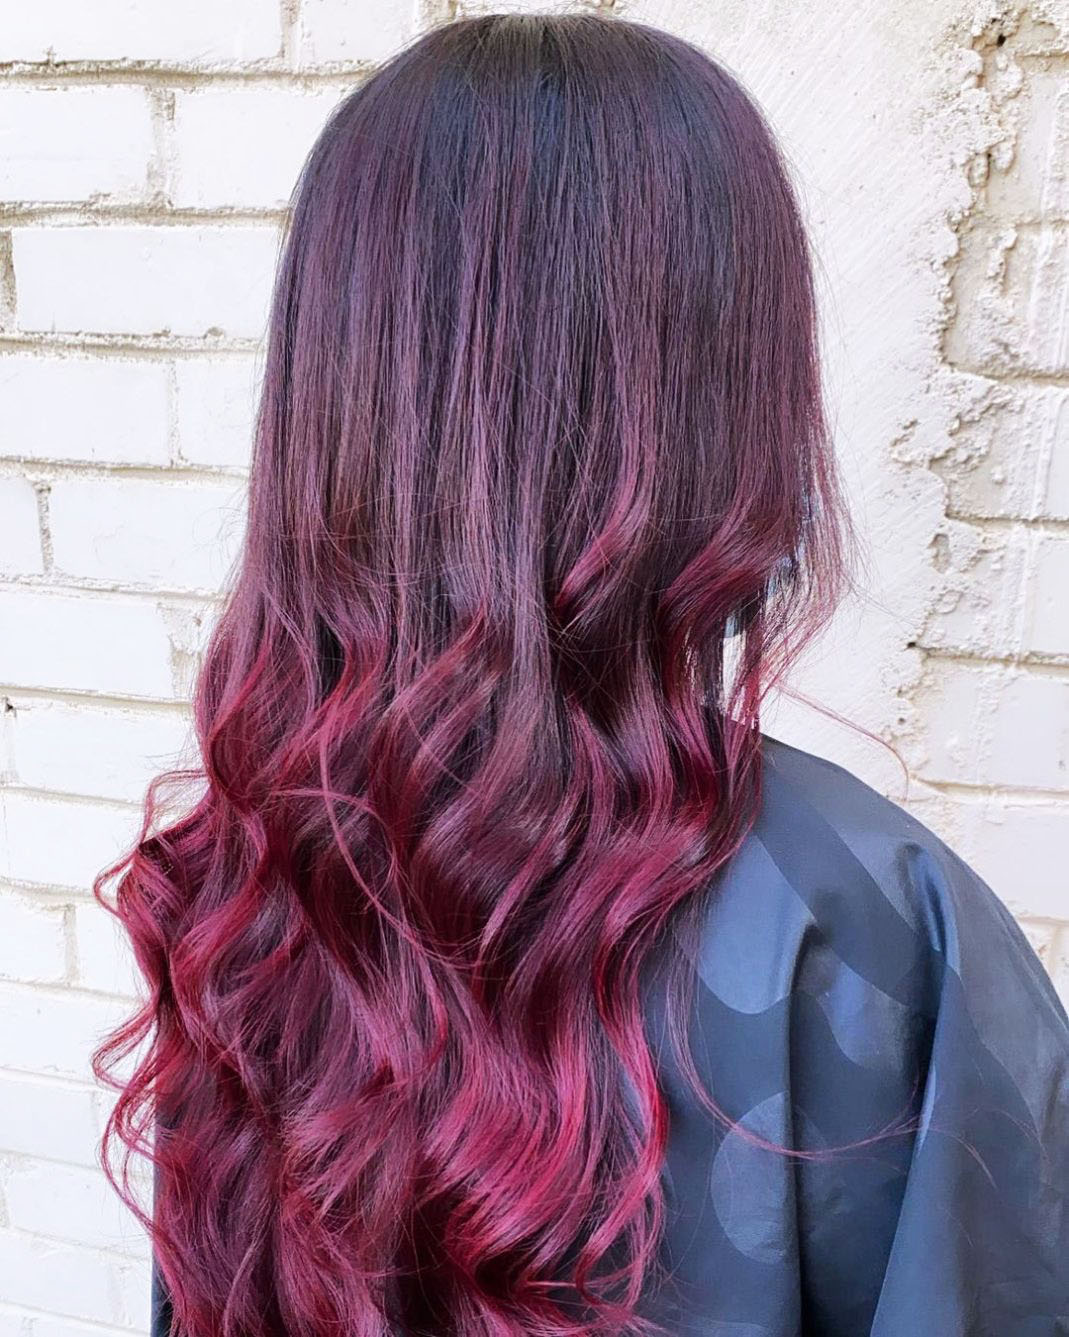 Hairstyles Winter 2020 ideas from hair stylists 6 8